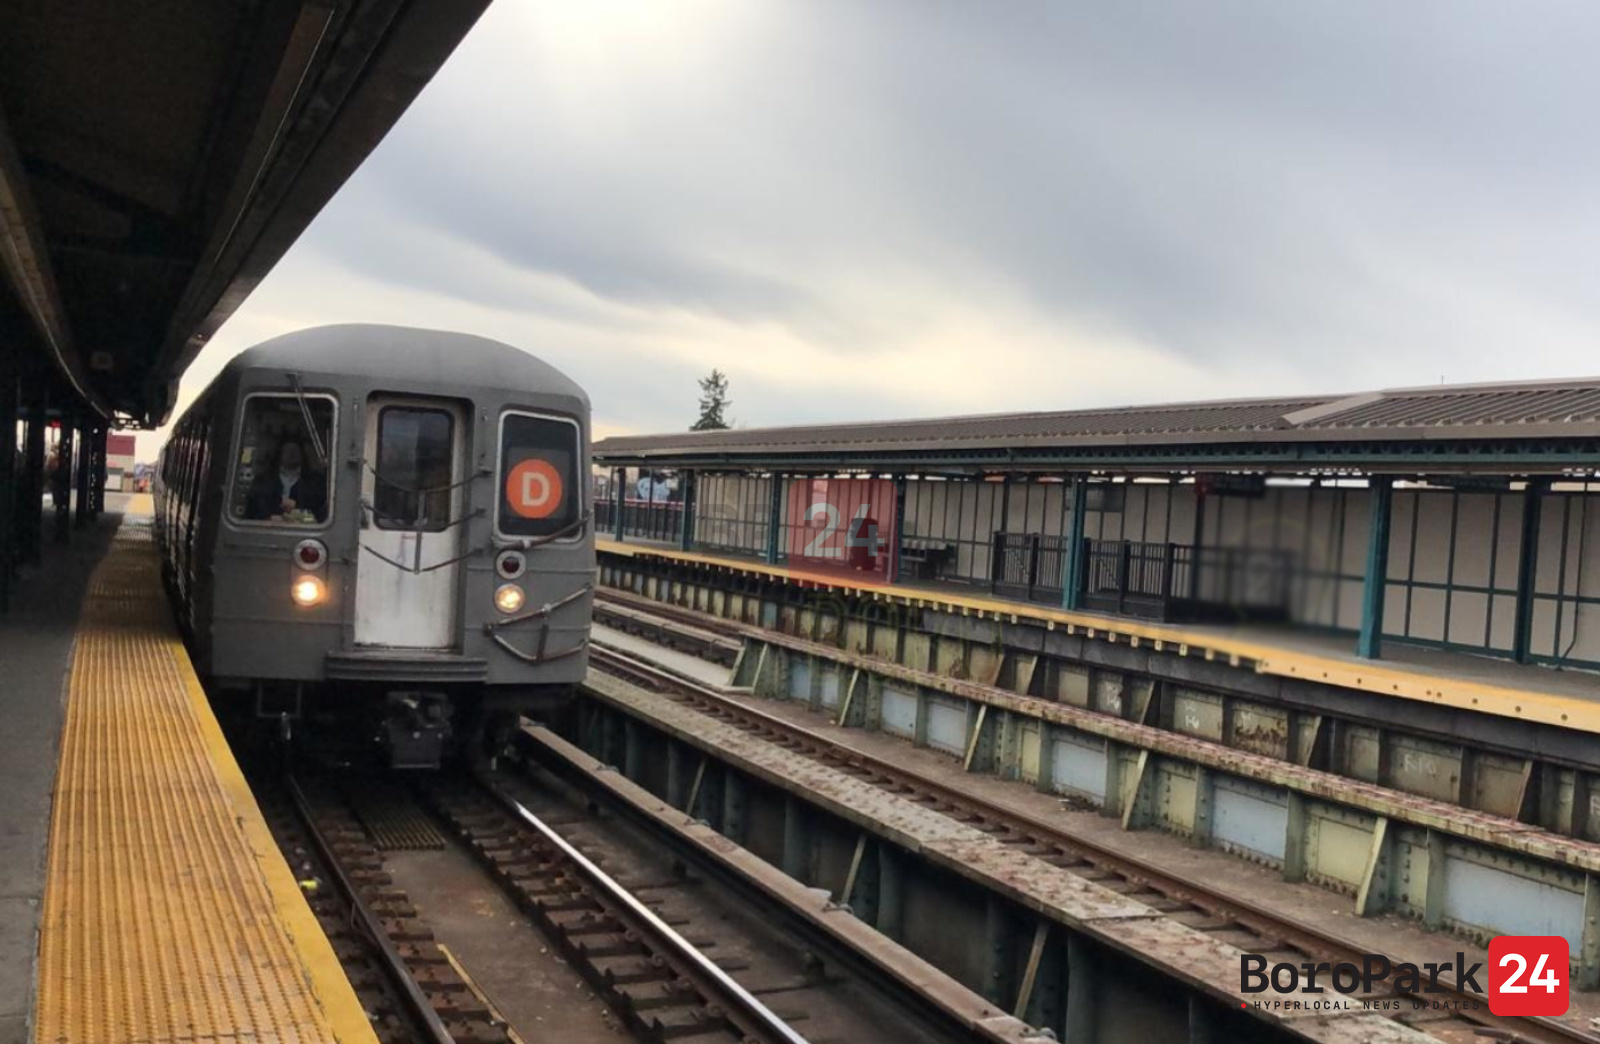 Possible Reduction for New York City MTA Services